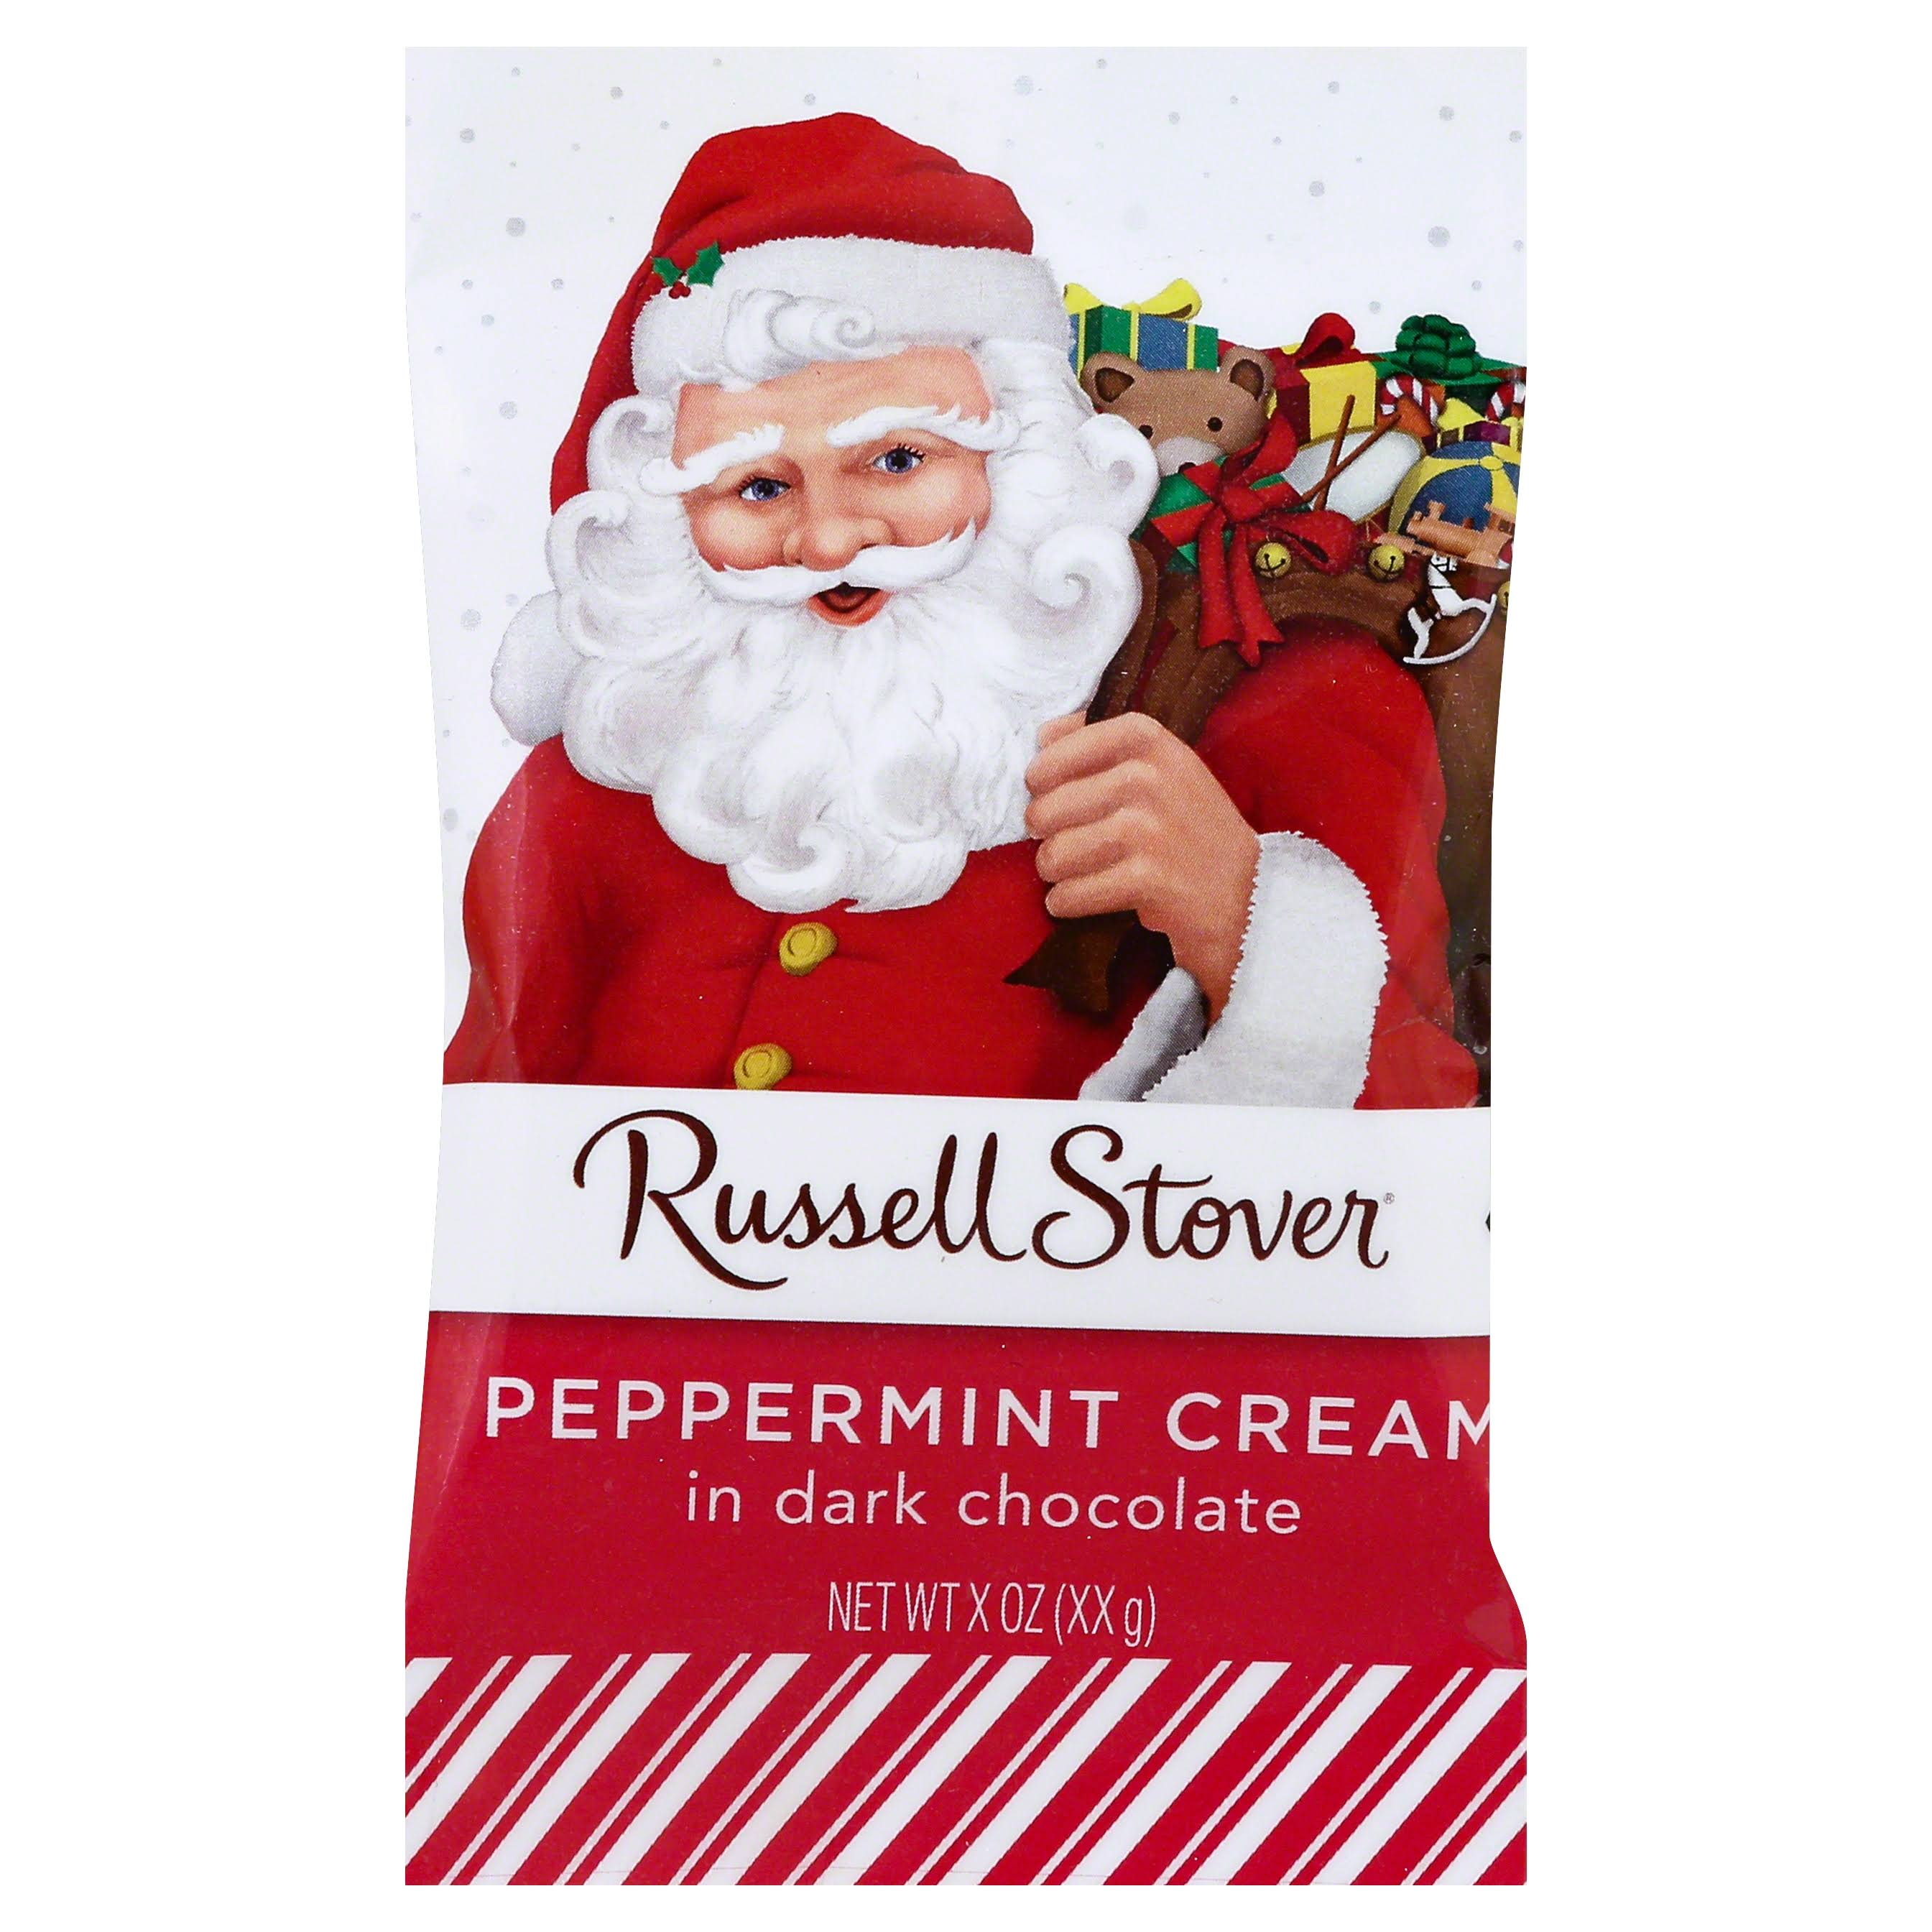 Russell Stover Peppermint Cream, in Dark Chocolate